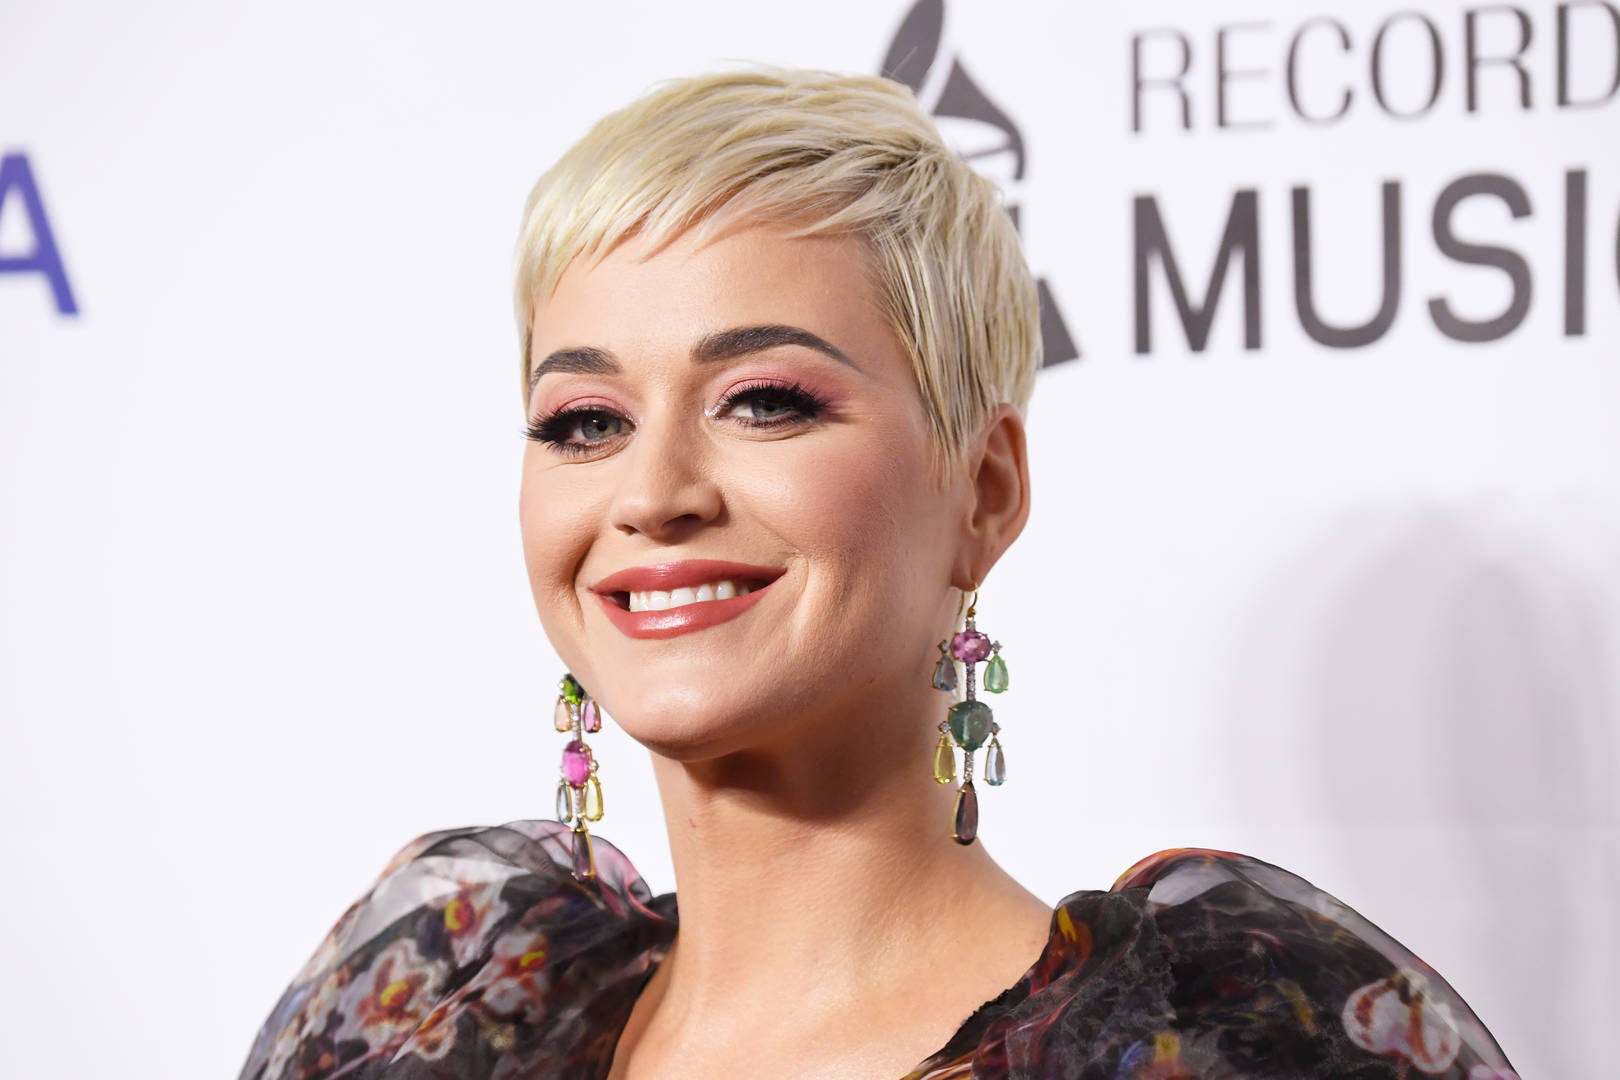 Katy Perry accused by a second person of sexual misconduct